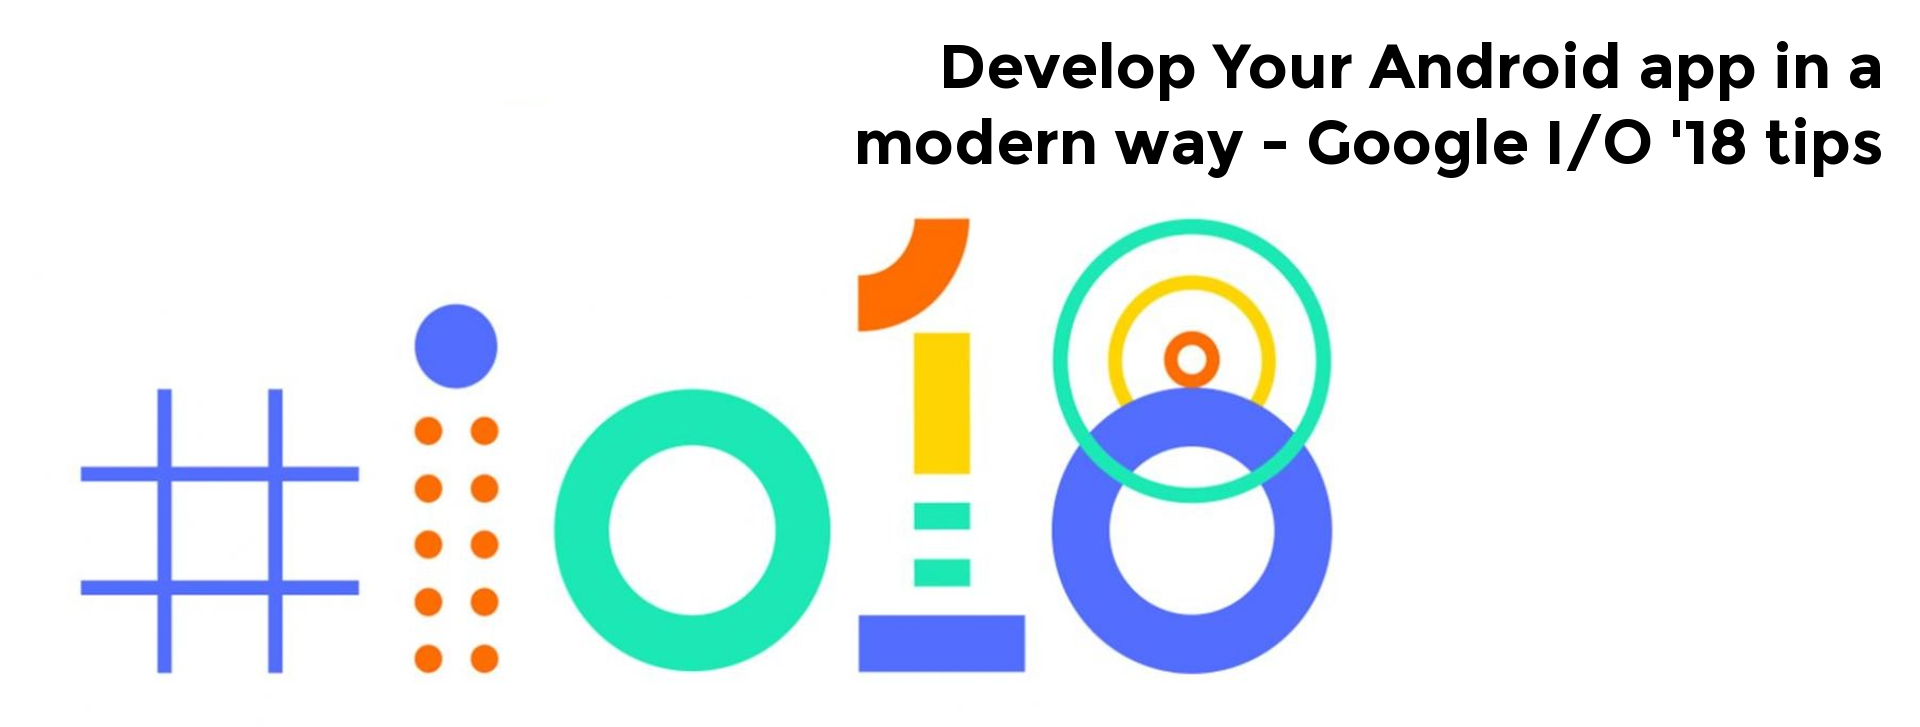 Develop Your Android app in a modern way — Google I/O '18 tips